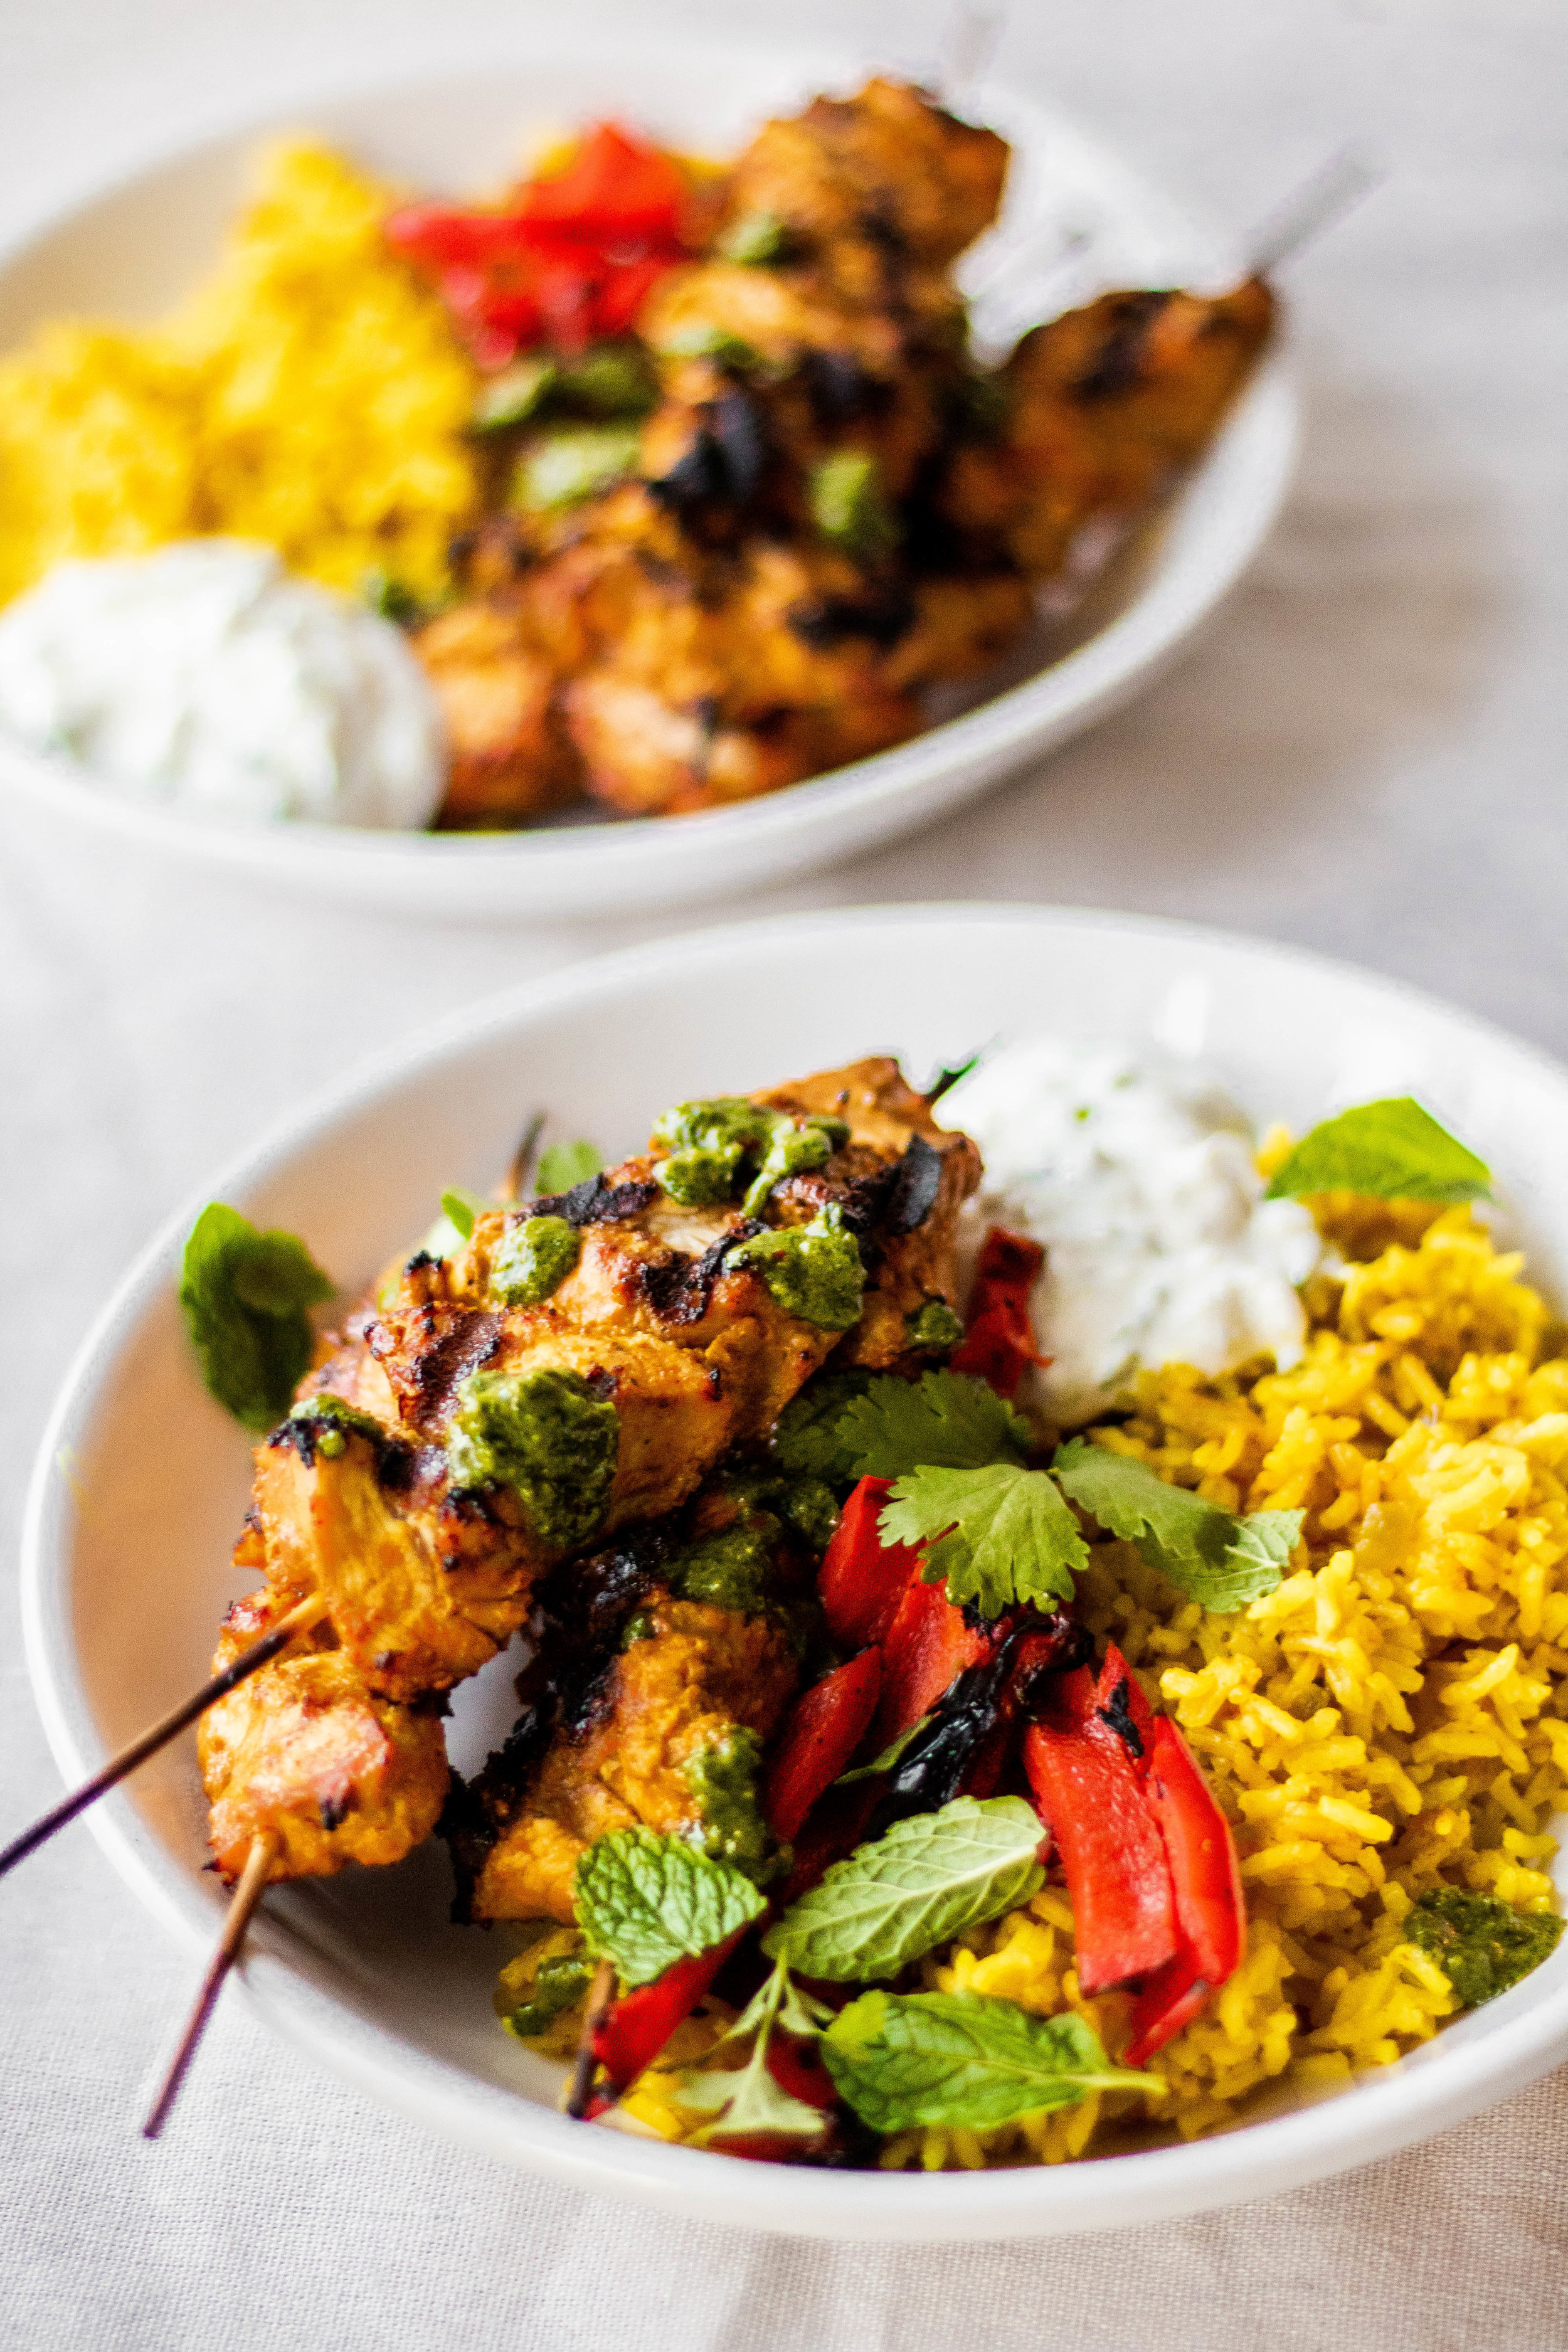 tandoori chicken3.jpg